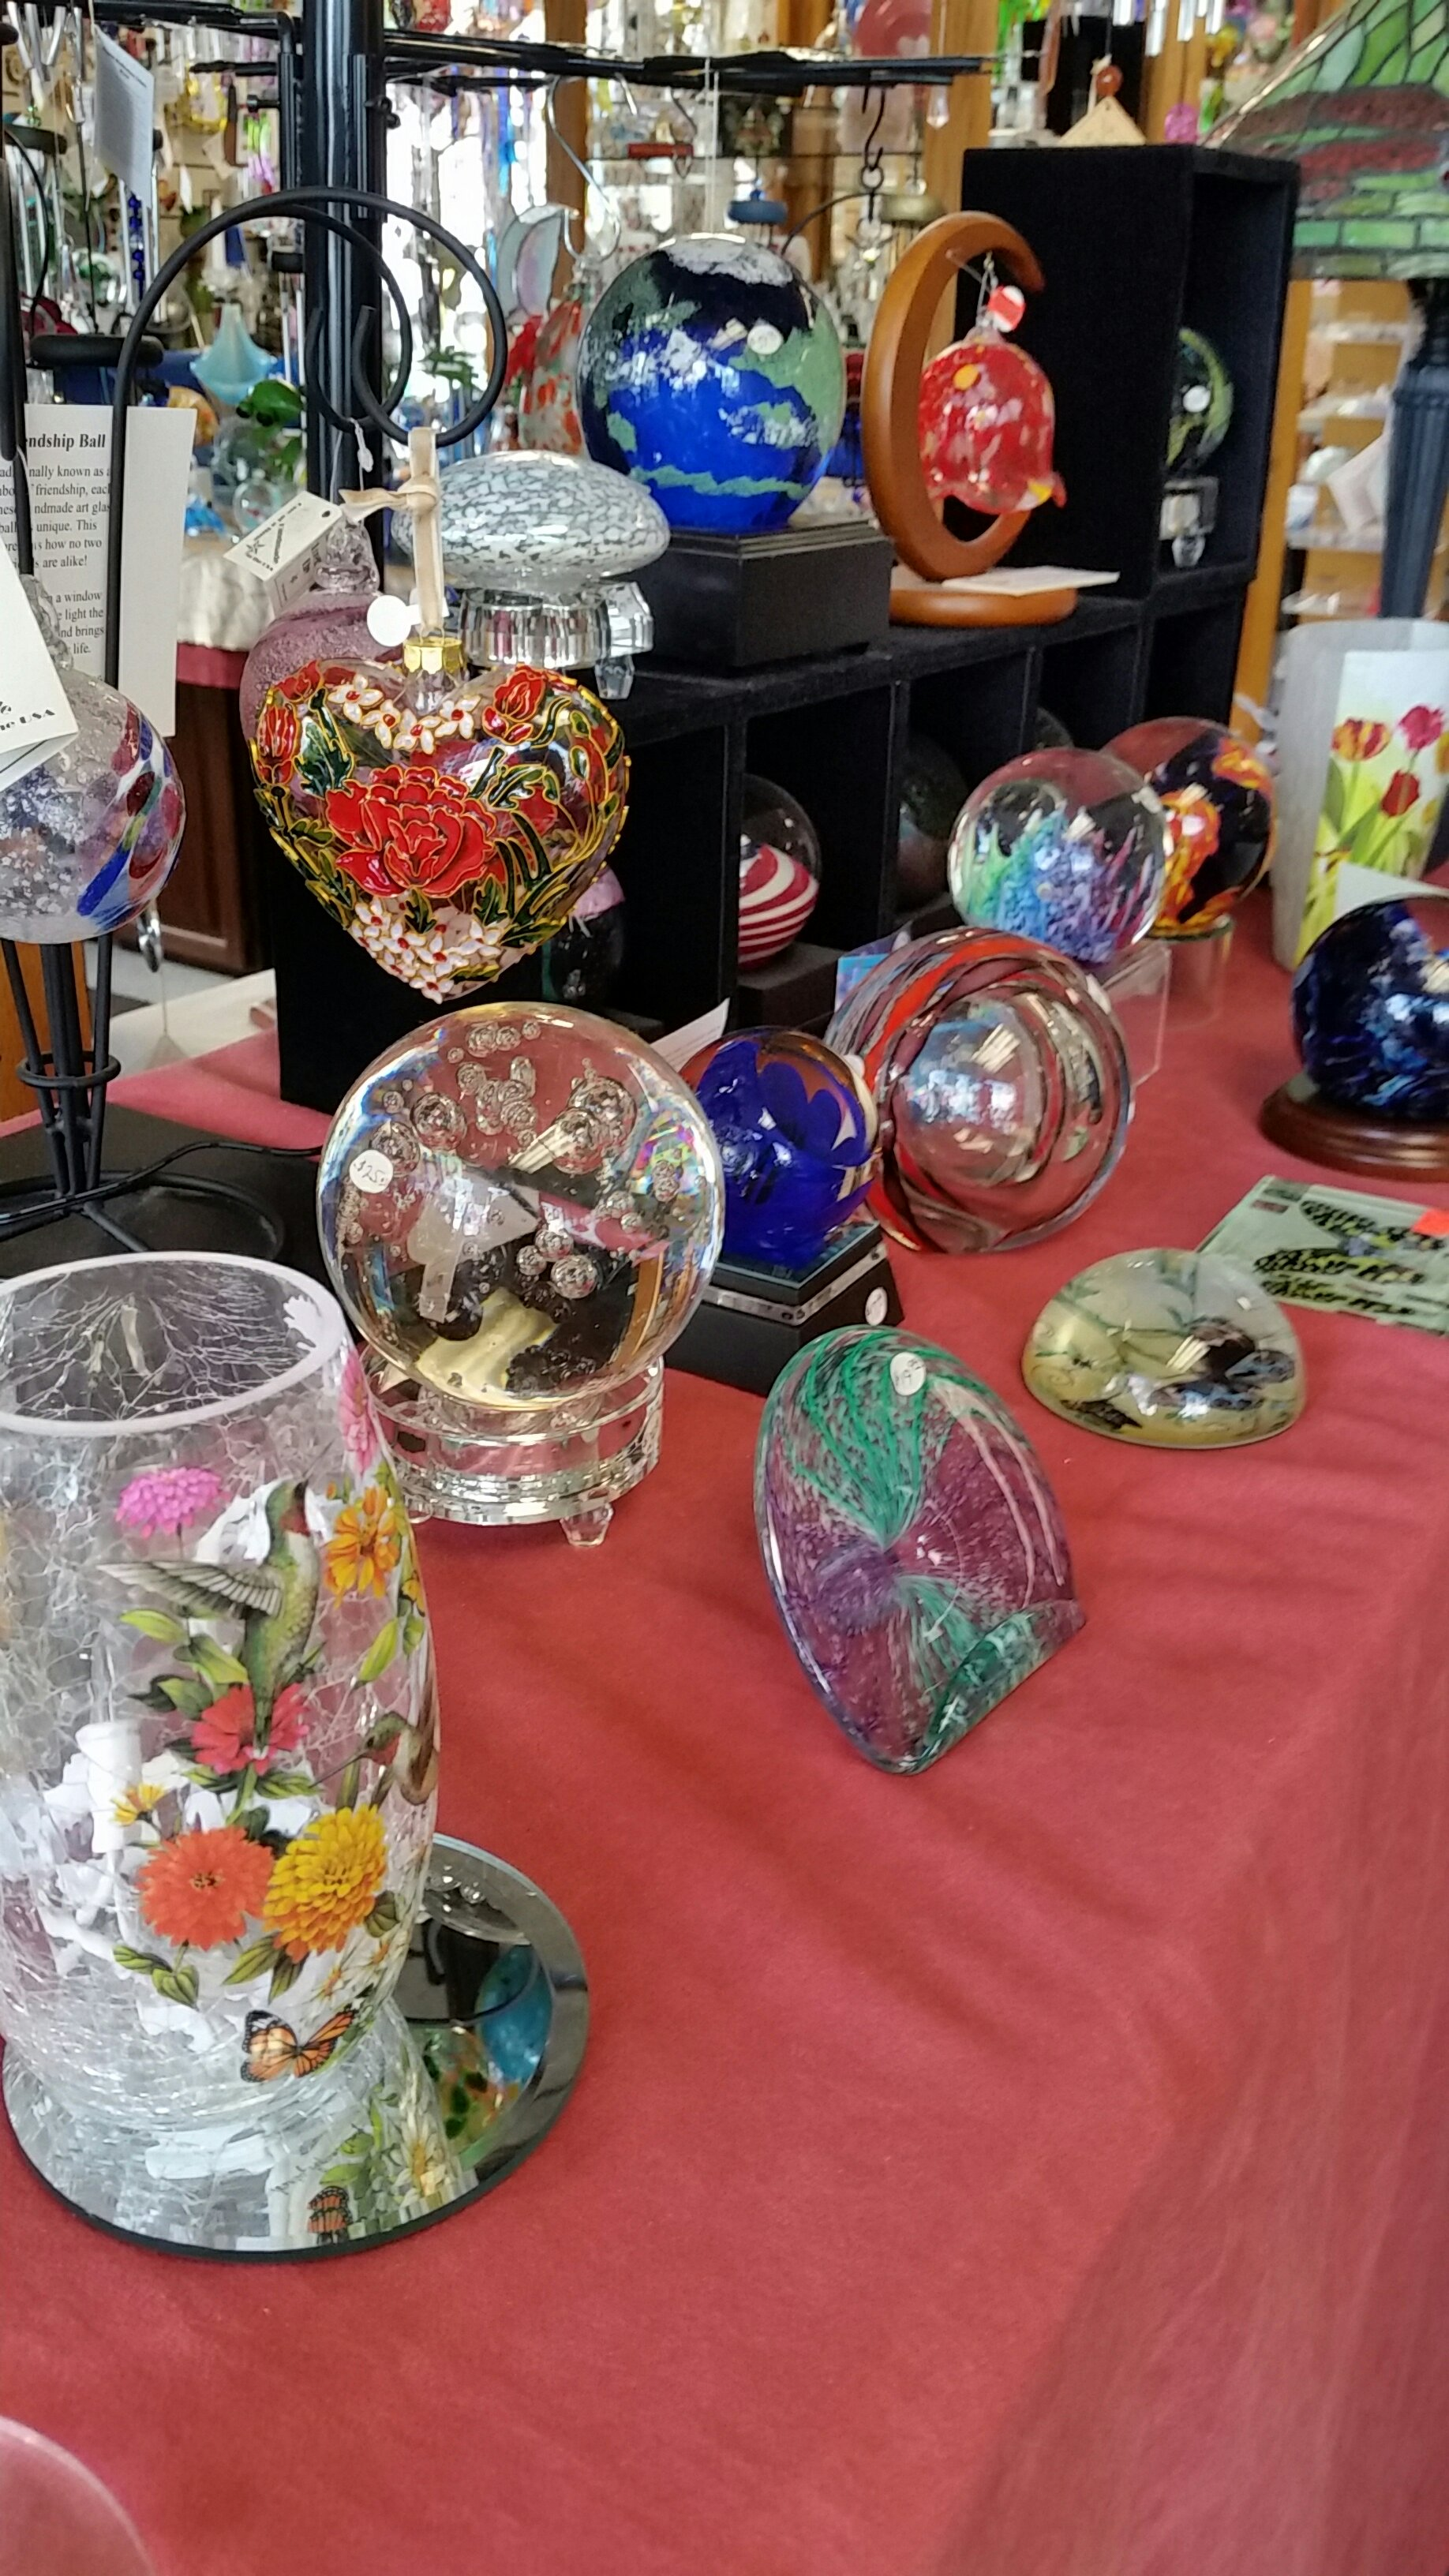 Friendship Ball and Unique Glass Art